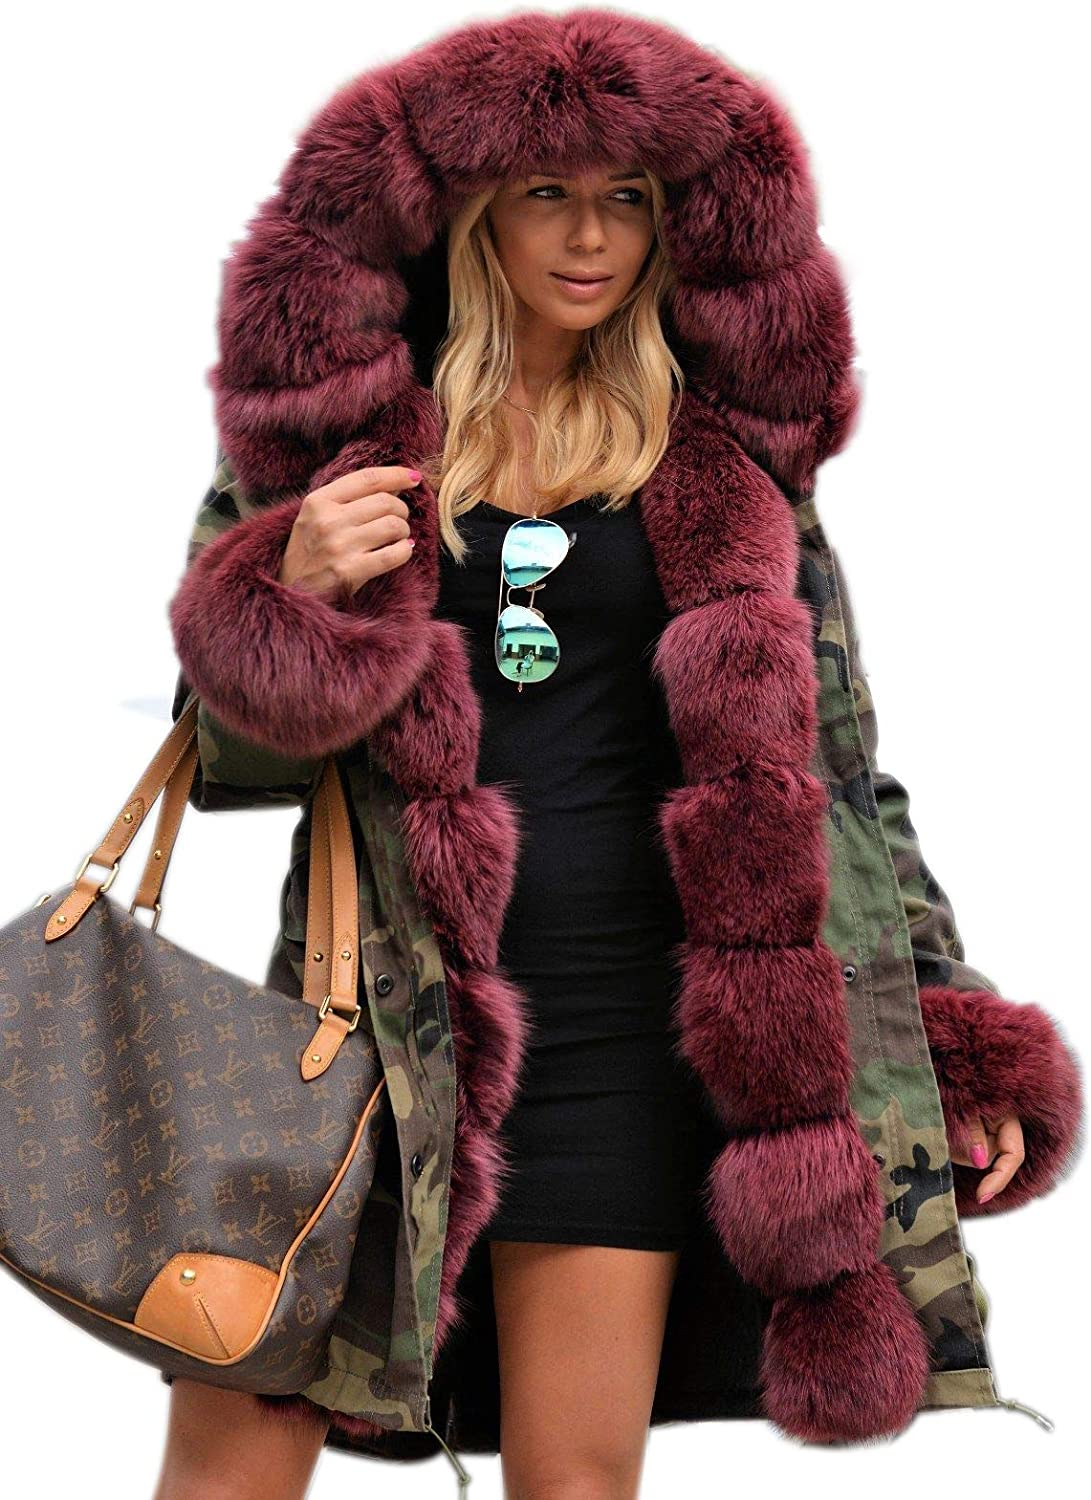 Tiptupu Womens Faux Fur Collar Camouflage Coats Parkas Winter Long Jackets Military Anorak with Pockets